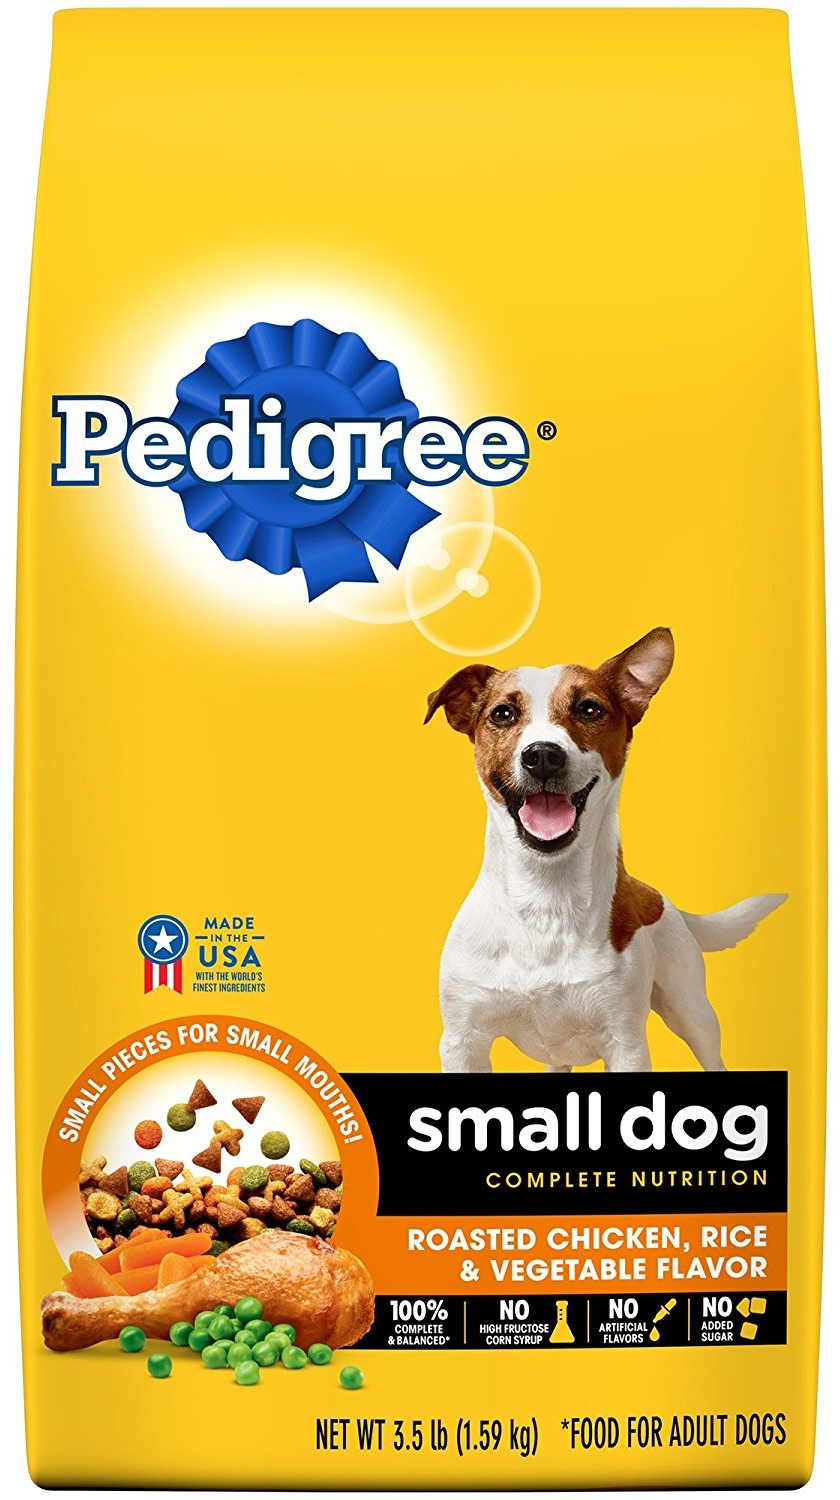 PEDIGREE Small Dog Adult Complete Nutrition Roasted Chicken, Rice & Vegetable Flavor Dry Dog Food 3.5 Pounds.jpg